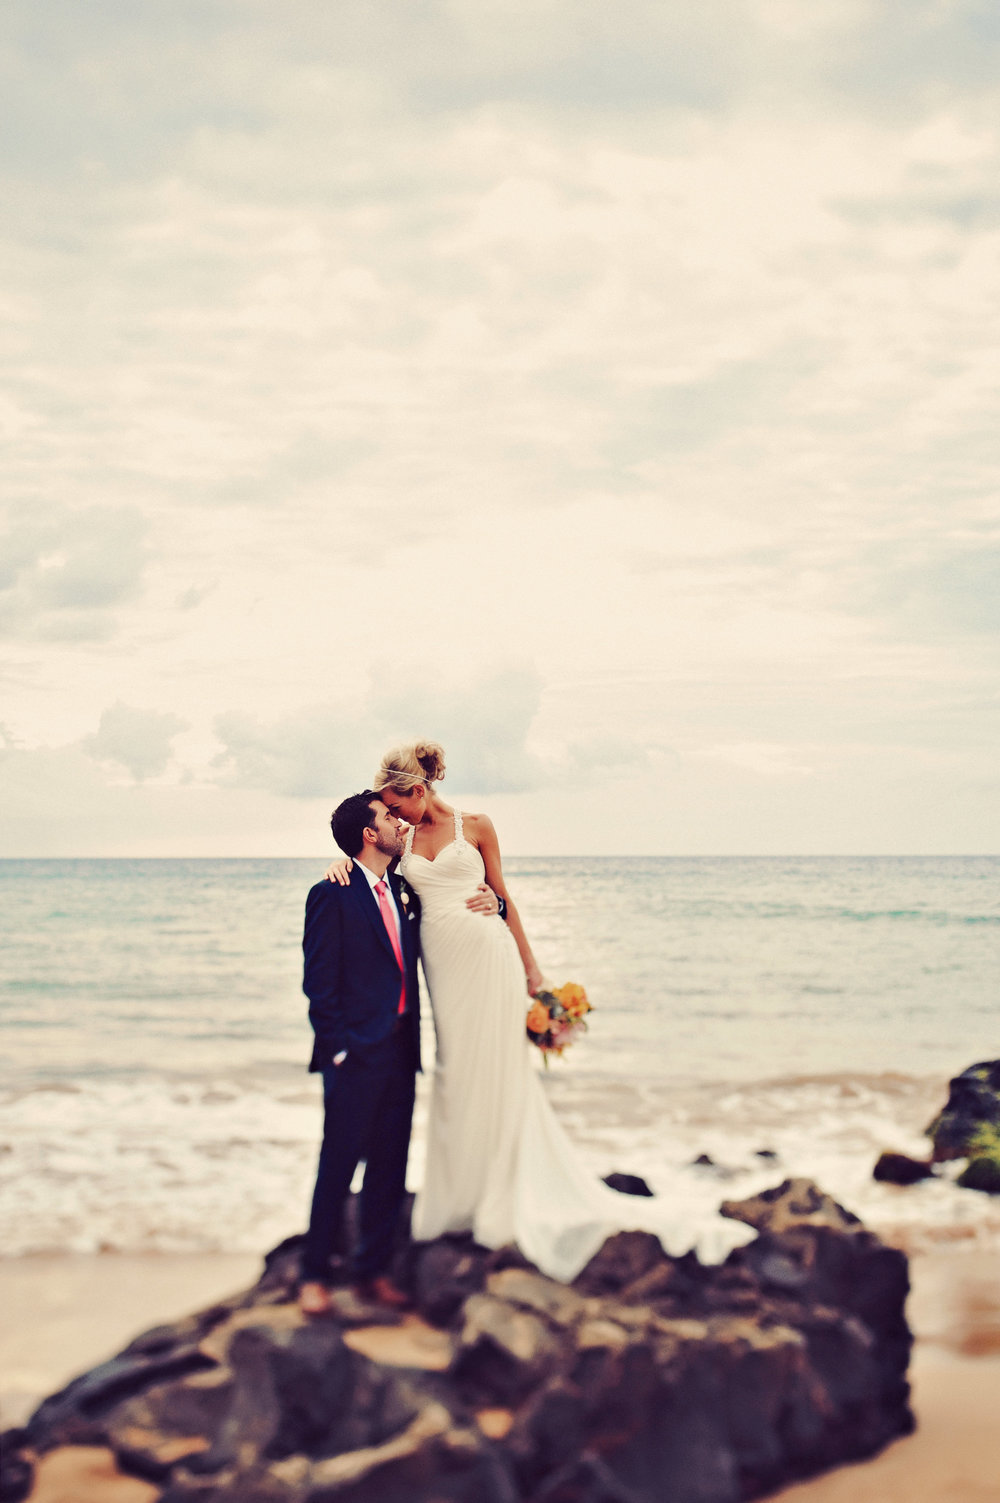 tyler_and_amber_mickelson_beach_wedding_pictures_aspiringkennedy